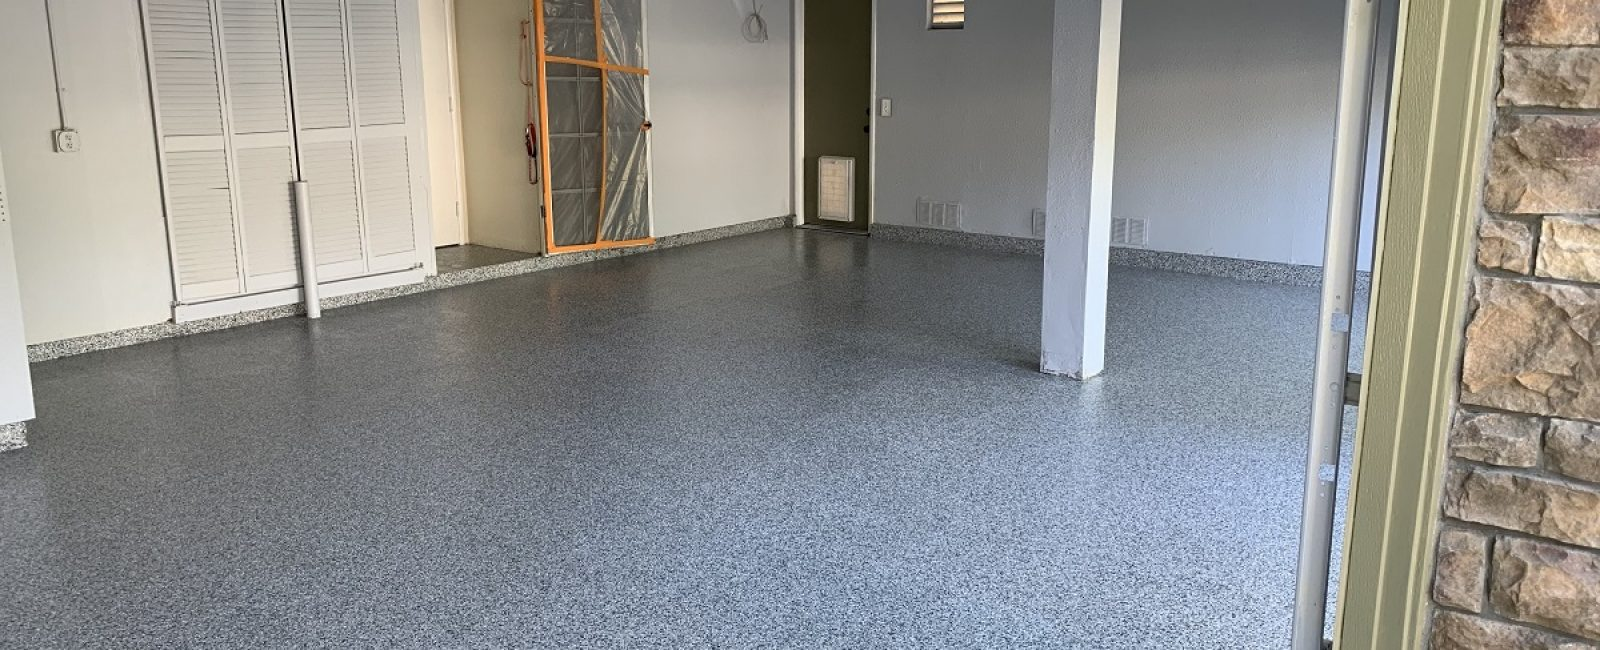 garage floor coating in valencia, ca